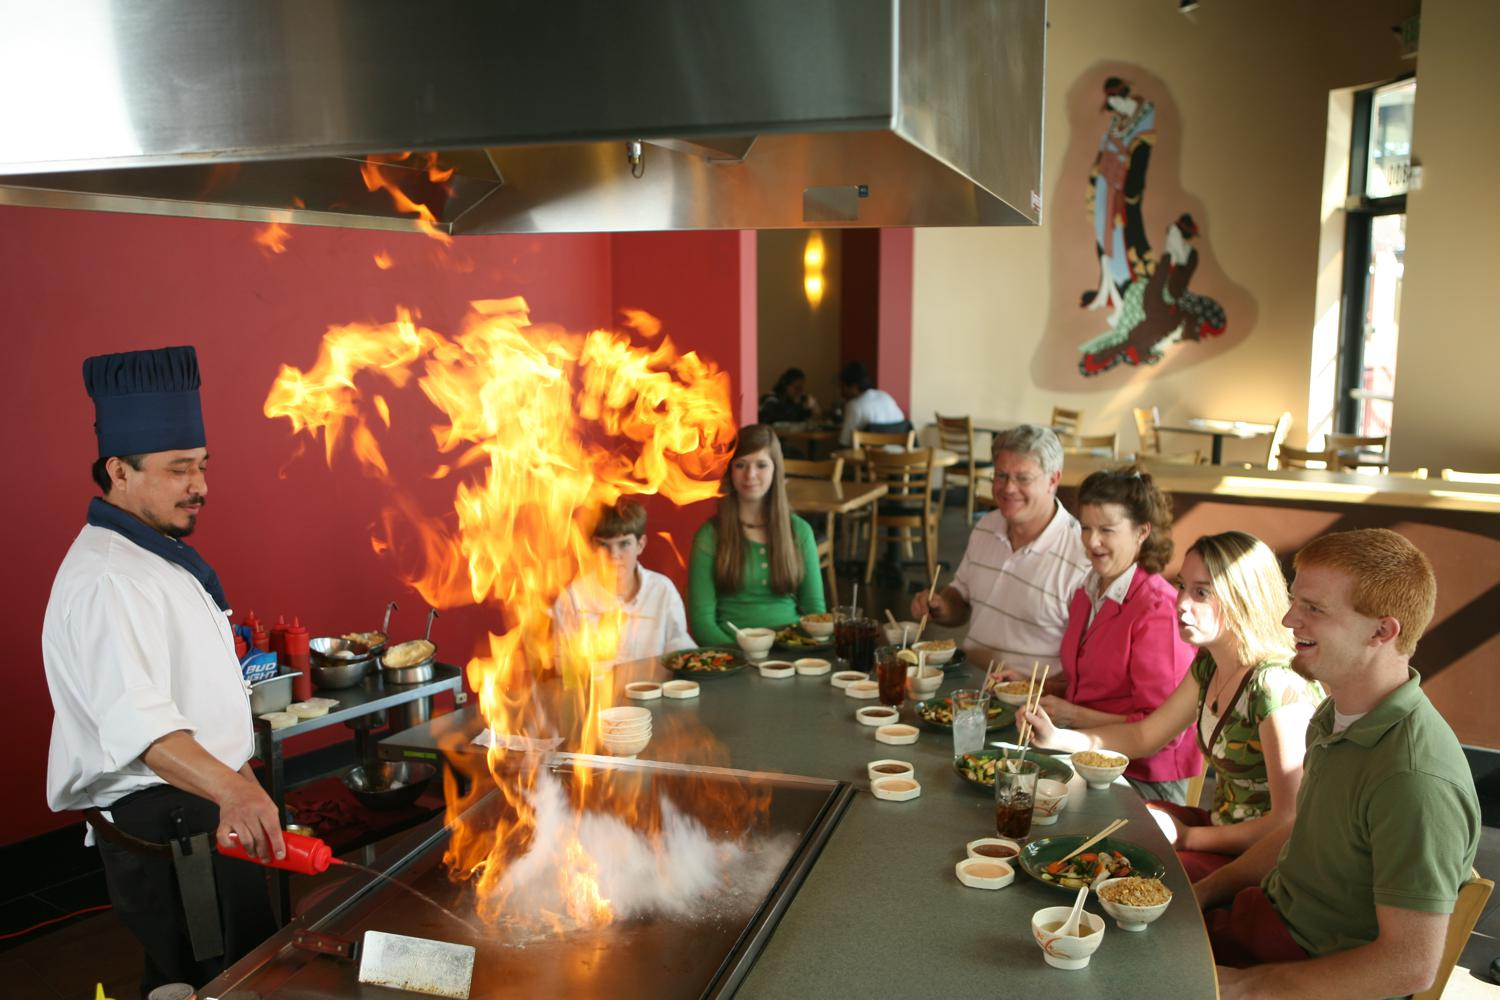 Ready Great Meal Fun Hibachi Grill Show on Traditional Japanese House Style